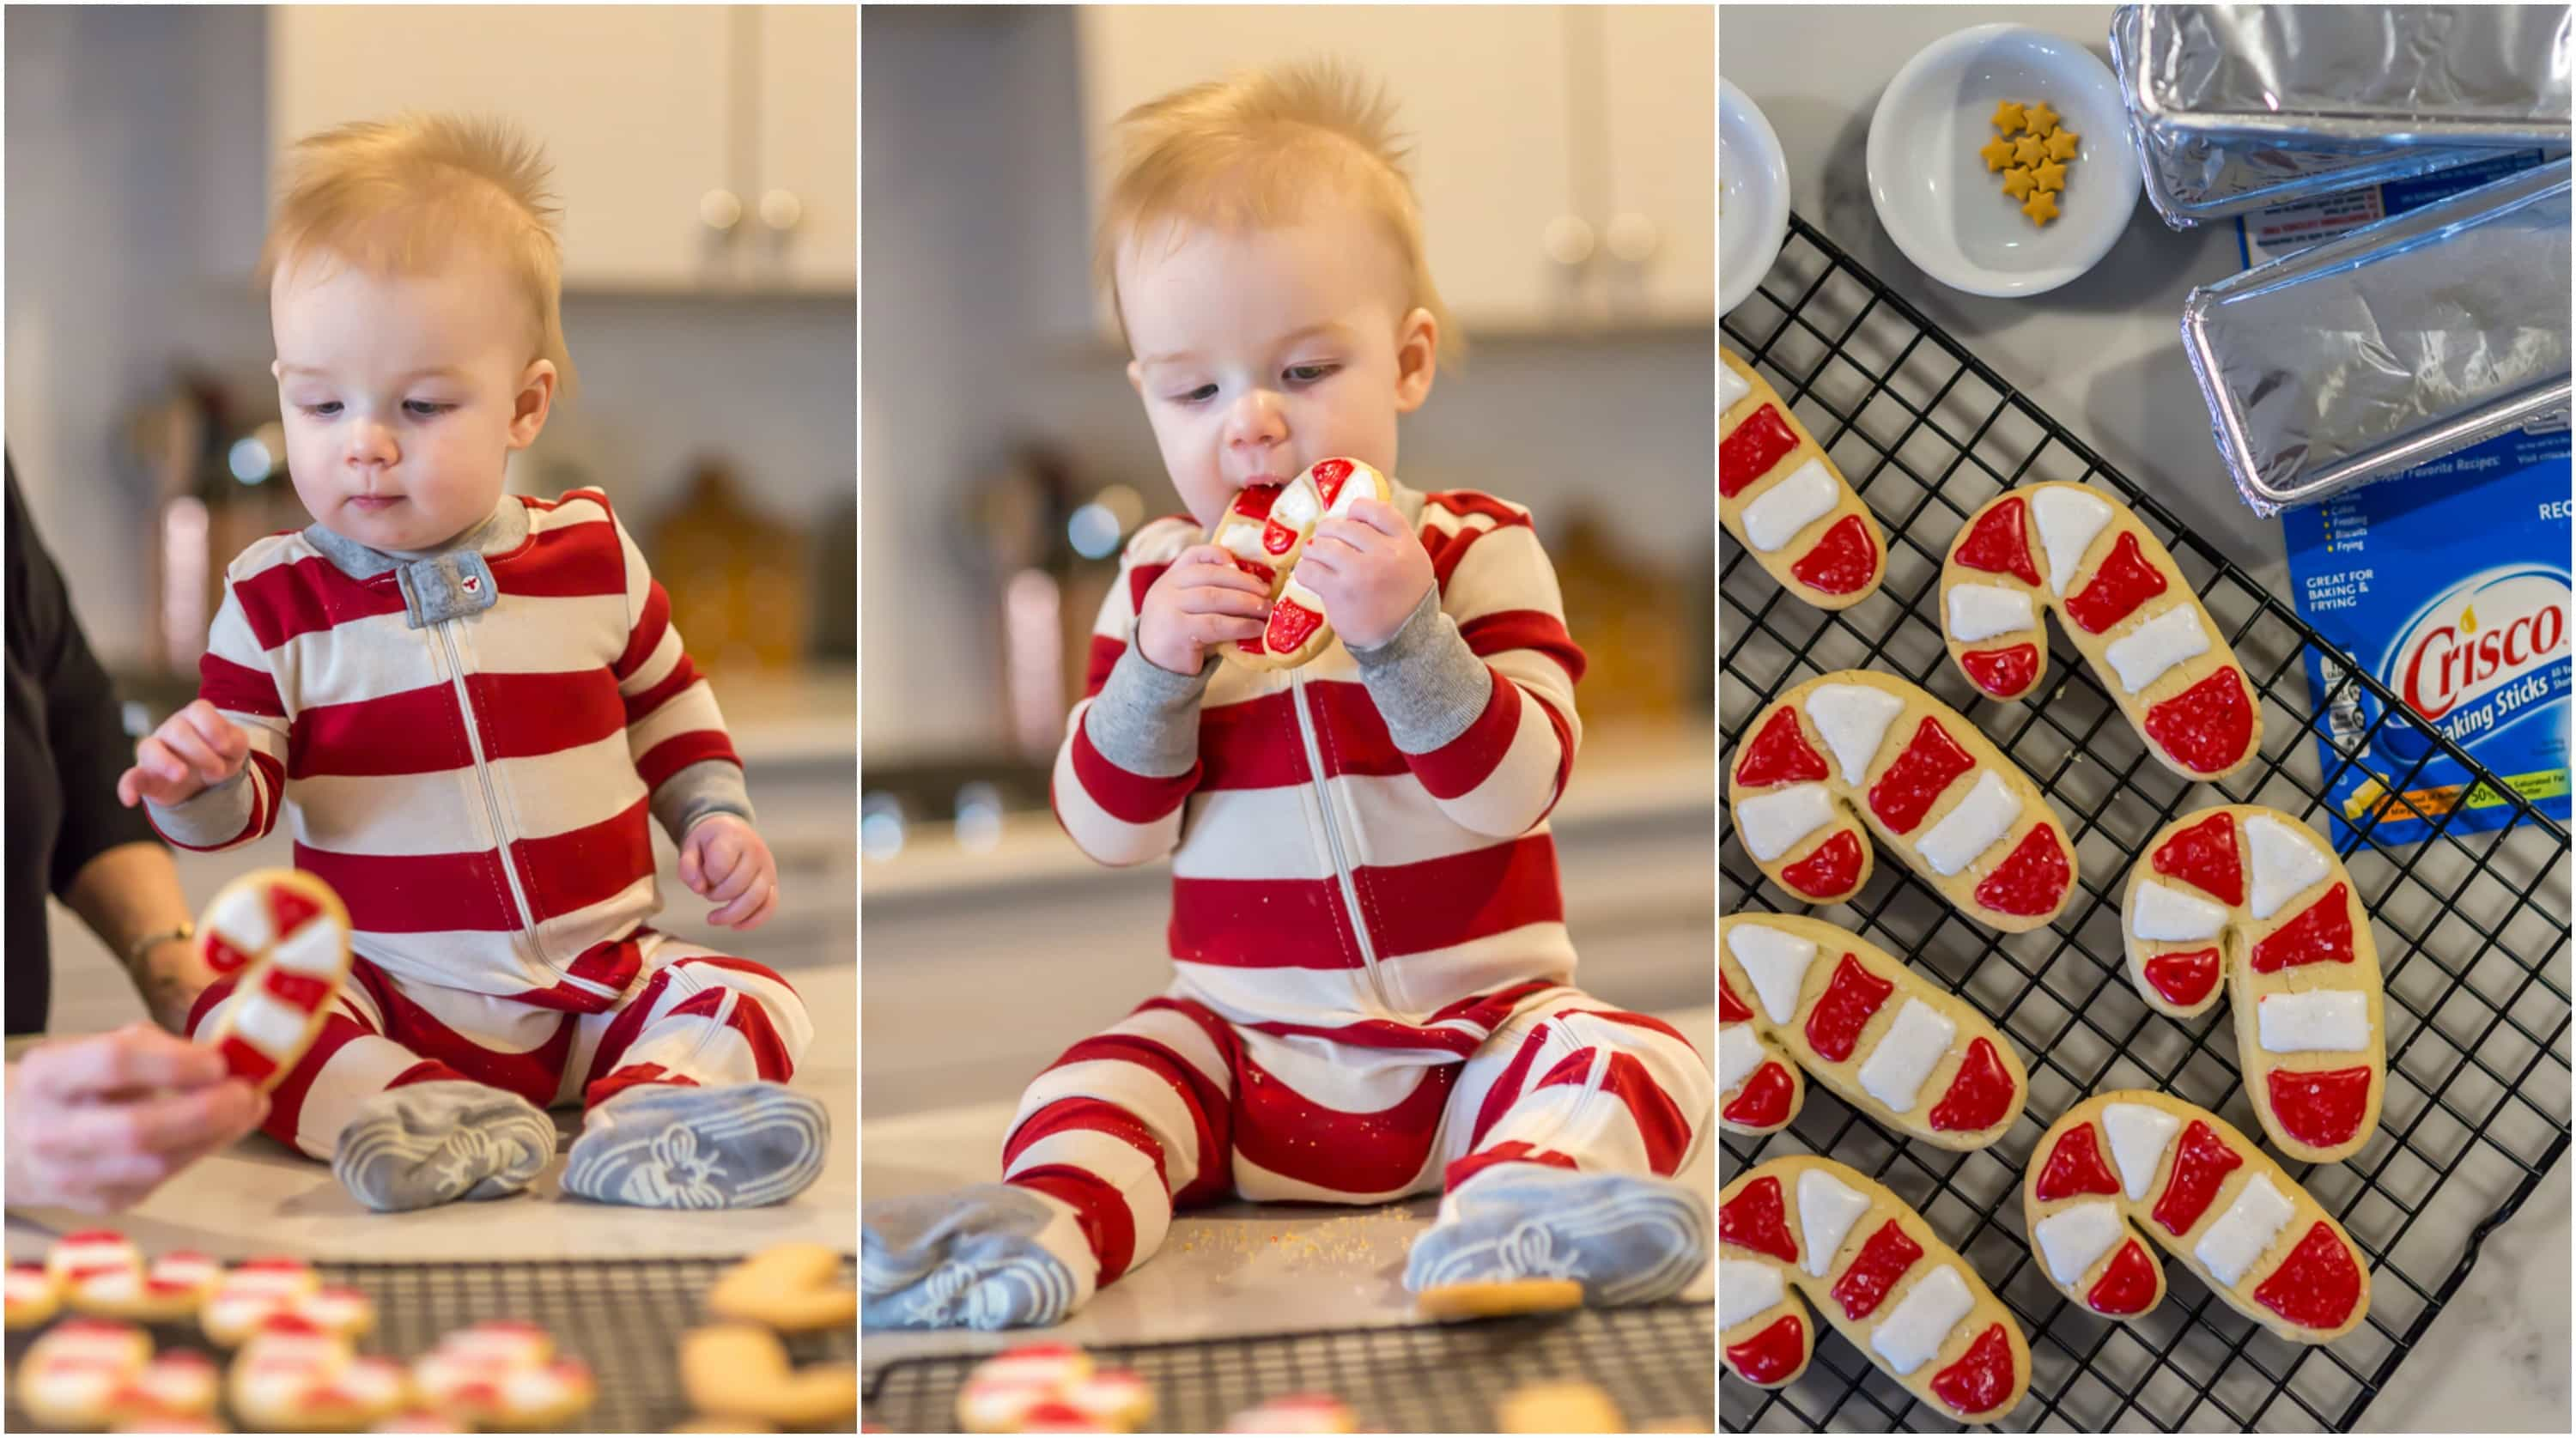 photo collage of Santa's favorite sugar cookies and a baby boy sampling them